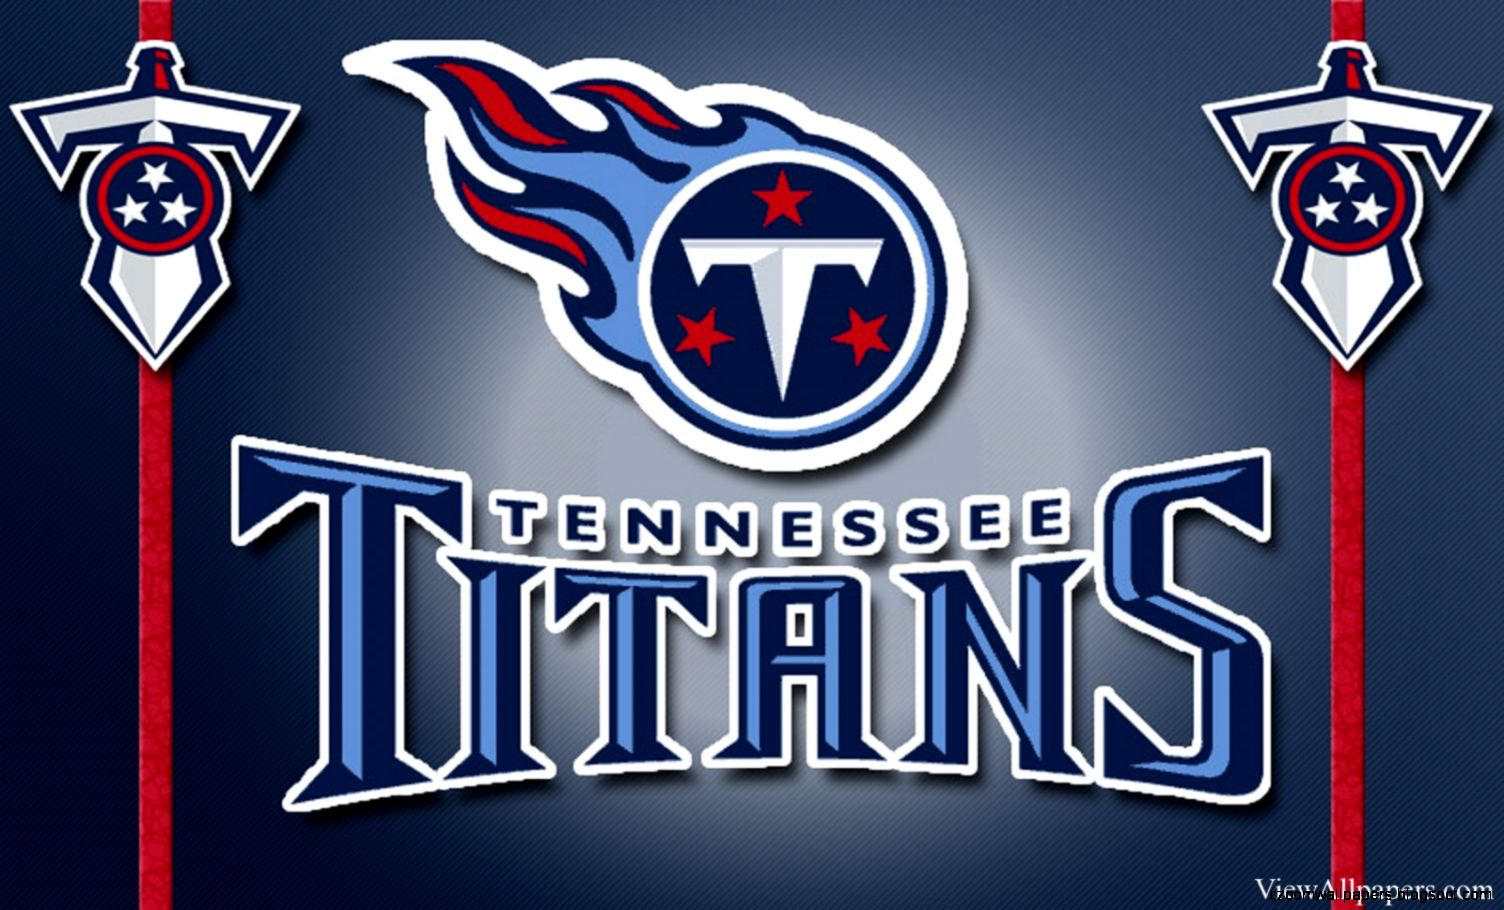 View Original Size Tennessee Titans Backgrounds Photo Image Source From This